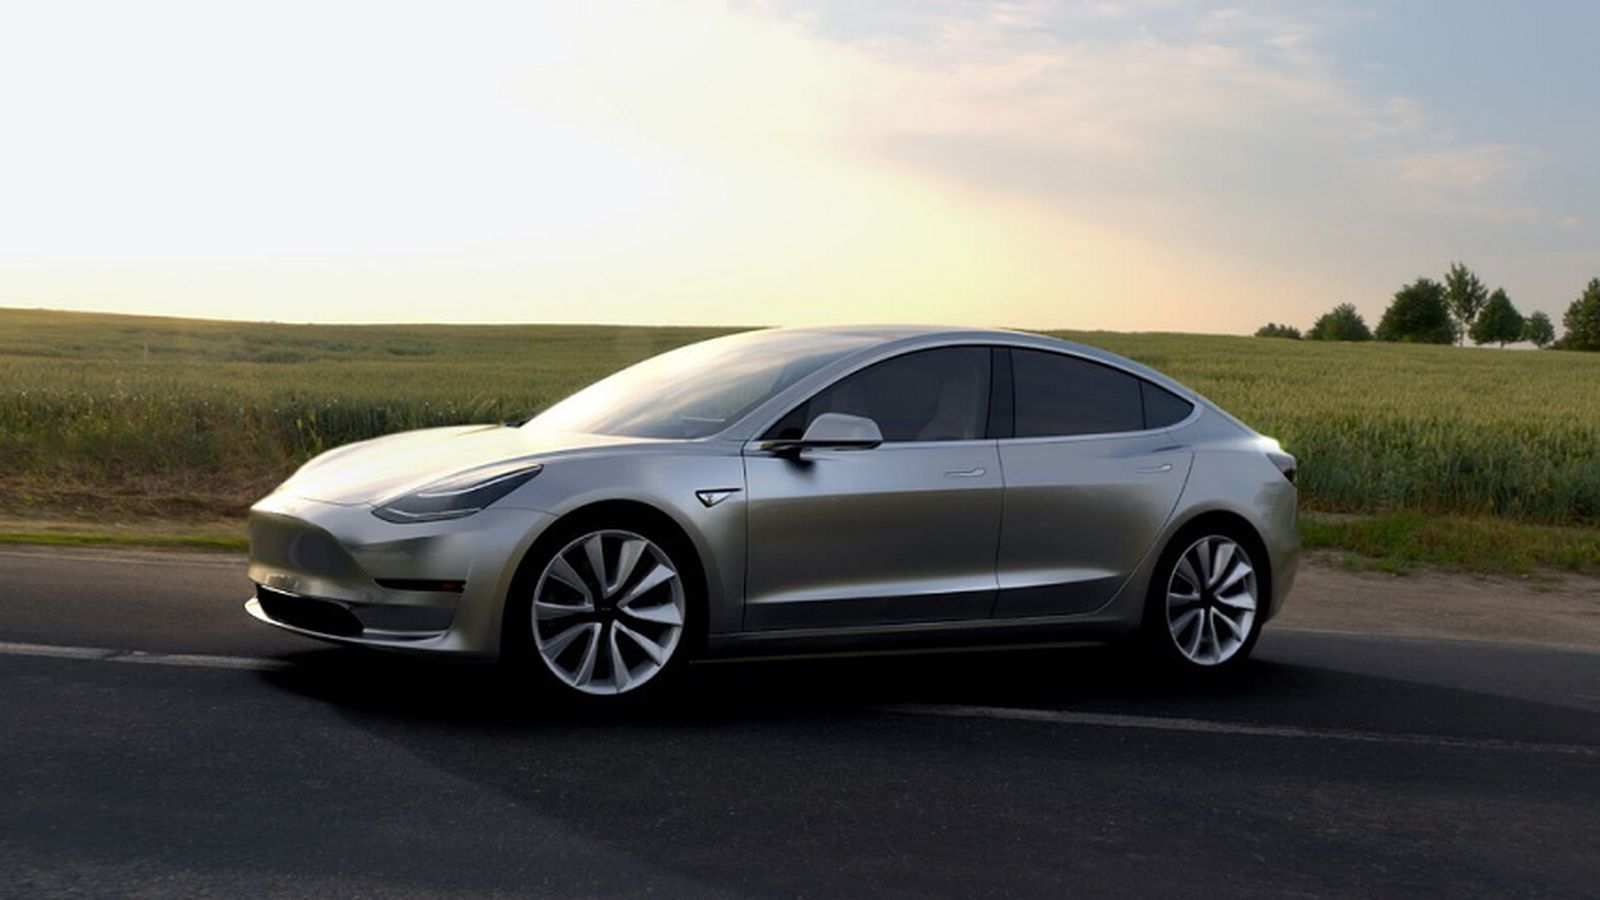 71 A Tesla Goal 2020 Pricing